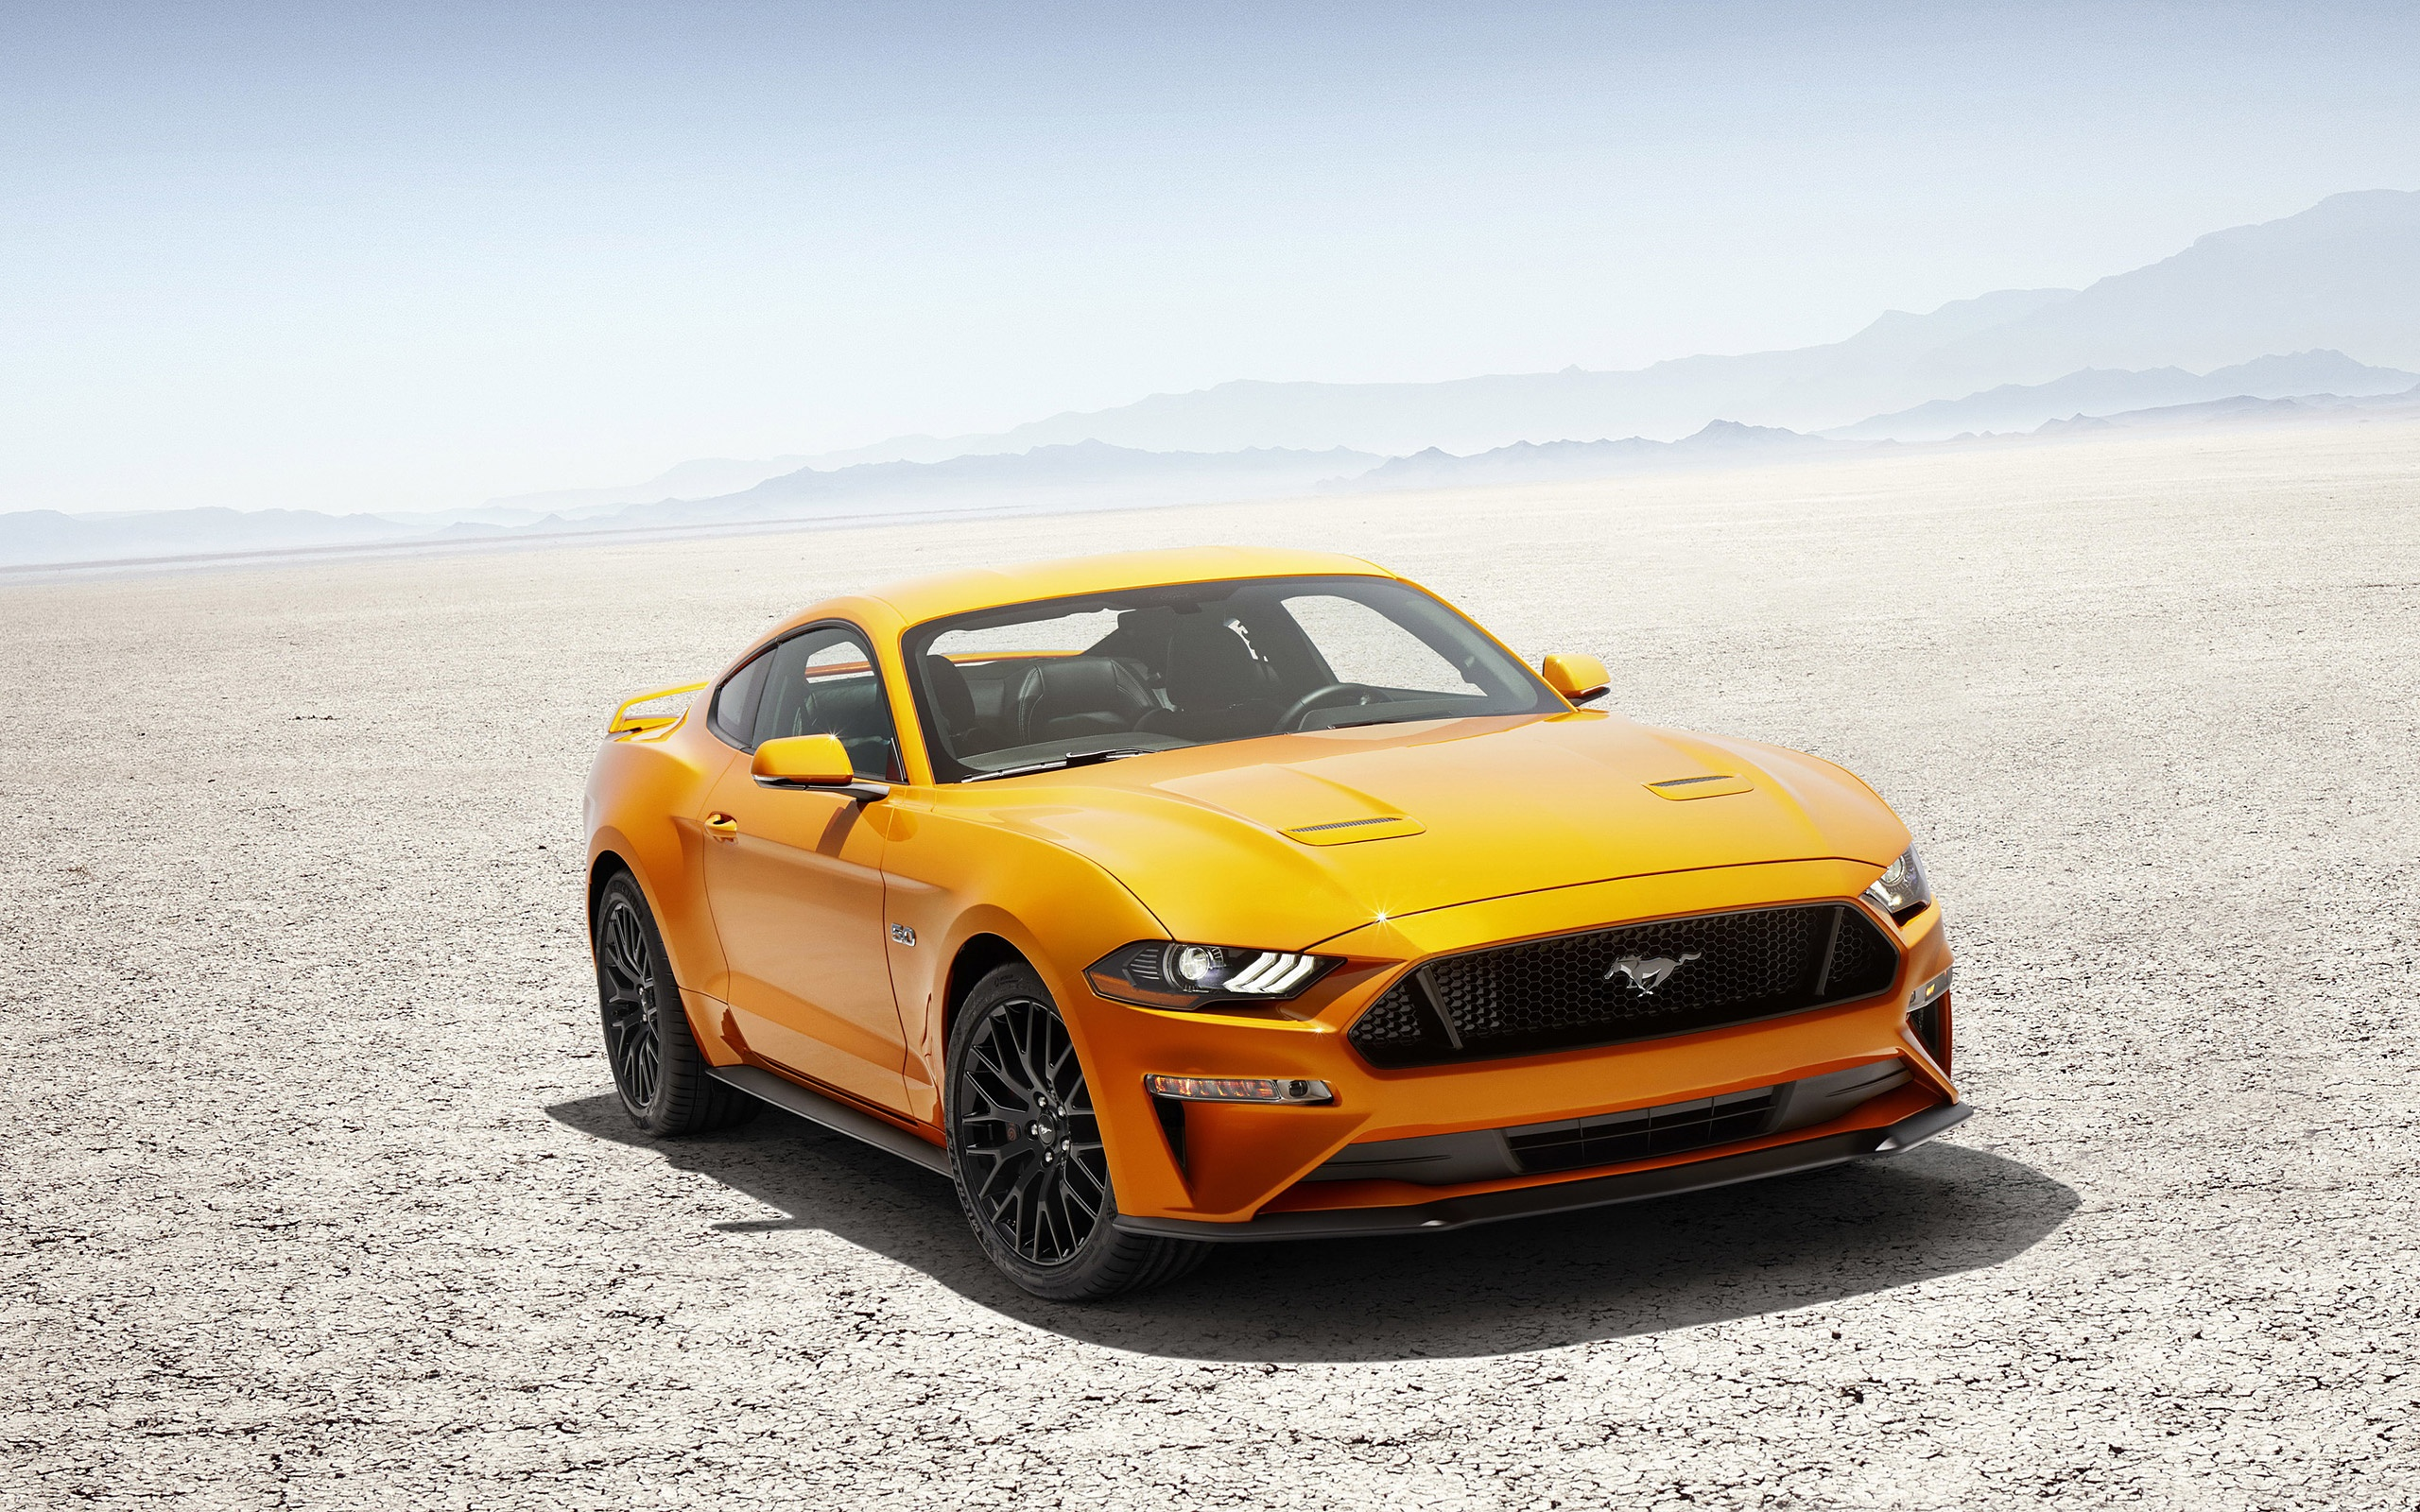 Ford Mustang Gt >> Ford Mustang GT 2018 Wallpapers - 2560x1600 - 1739839